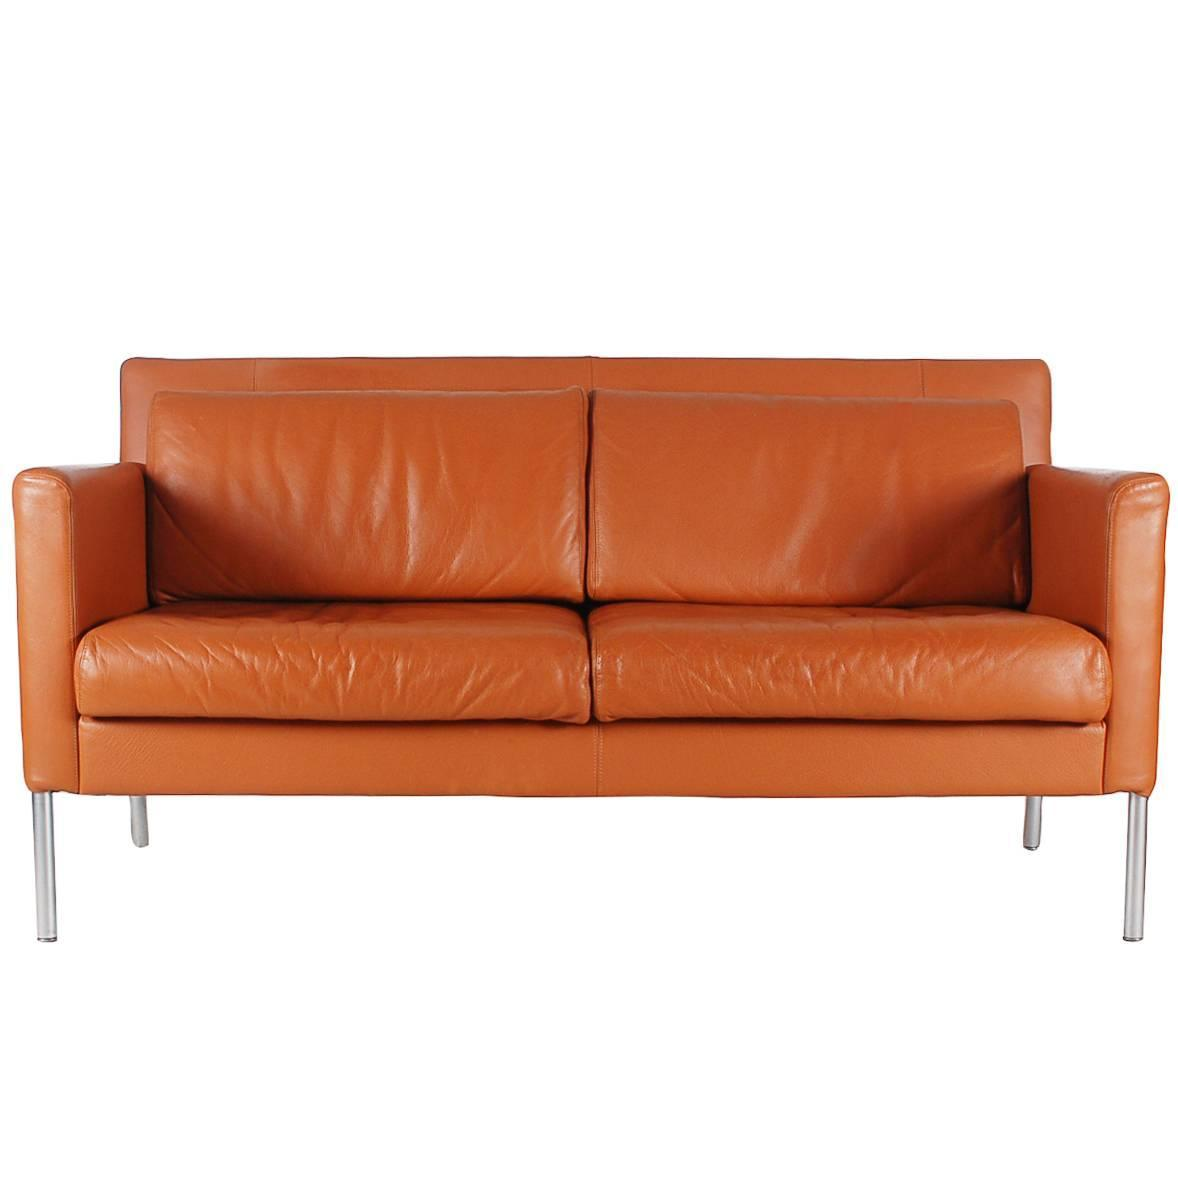 Mid century modern leather sofa after b rge mogensen for for Mid century modern leather sofa